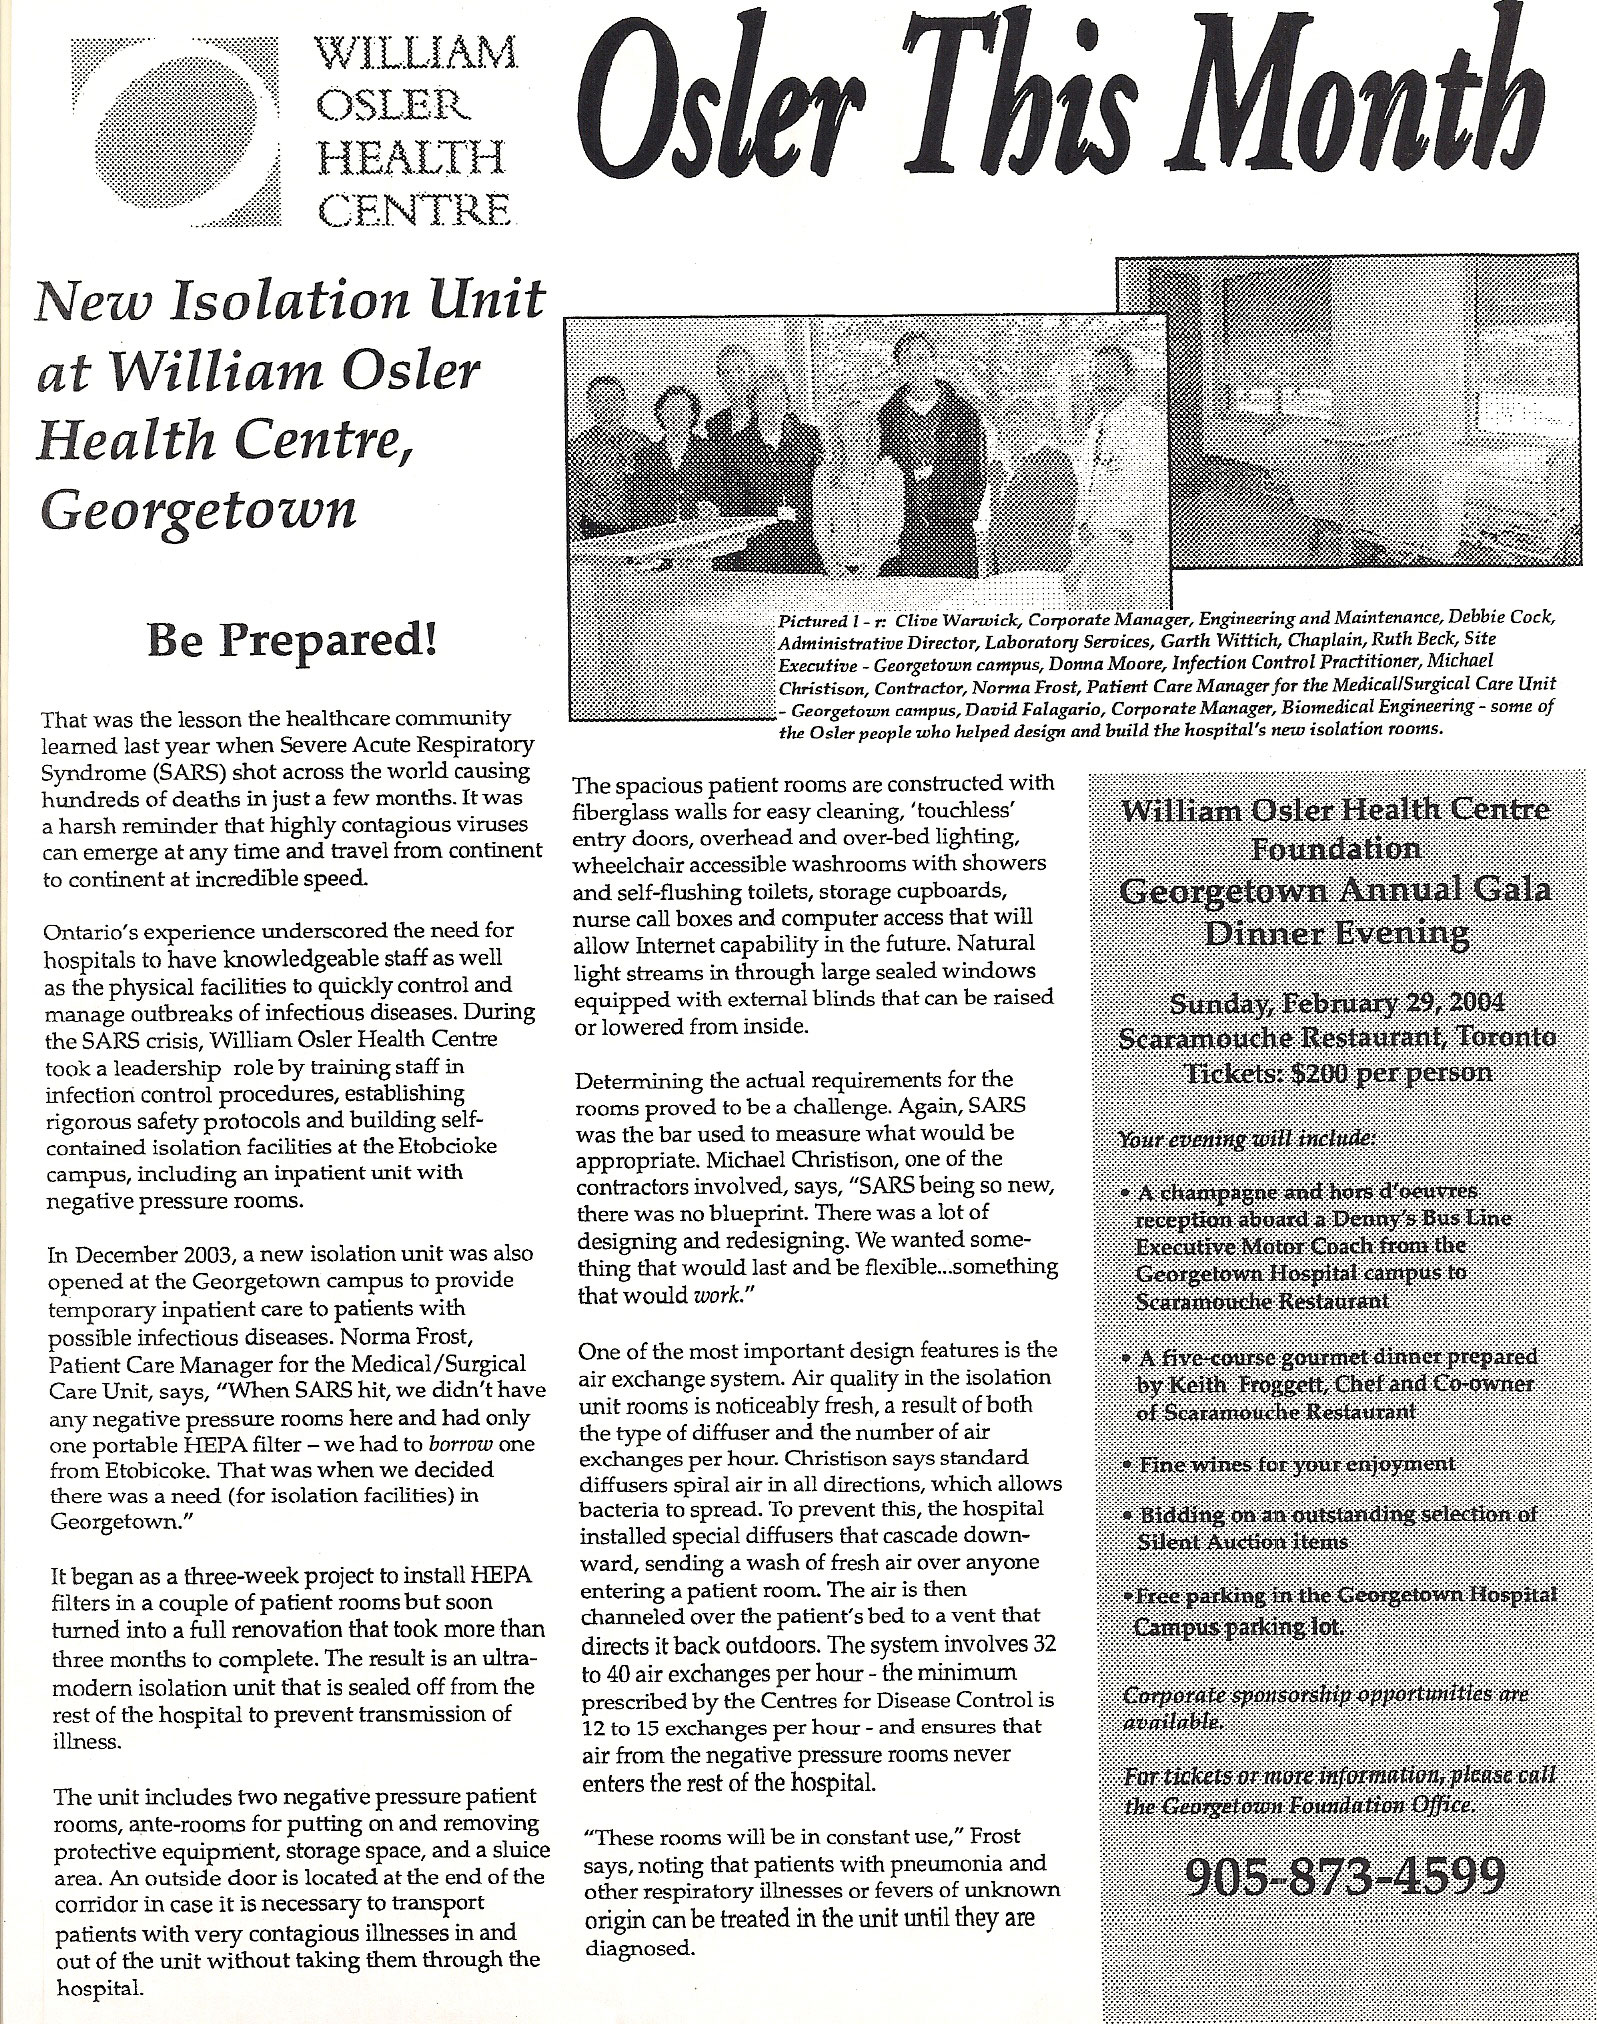 Osler This Month news Article. New Isolation Unit at William Osler Health Care Unit, Georgetown.